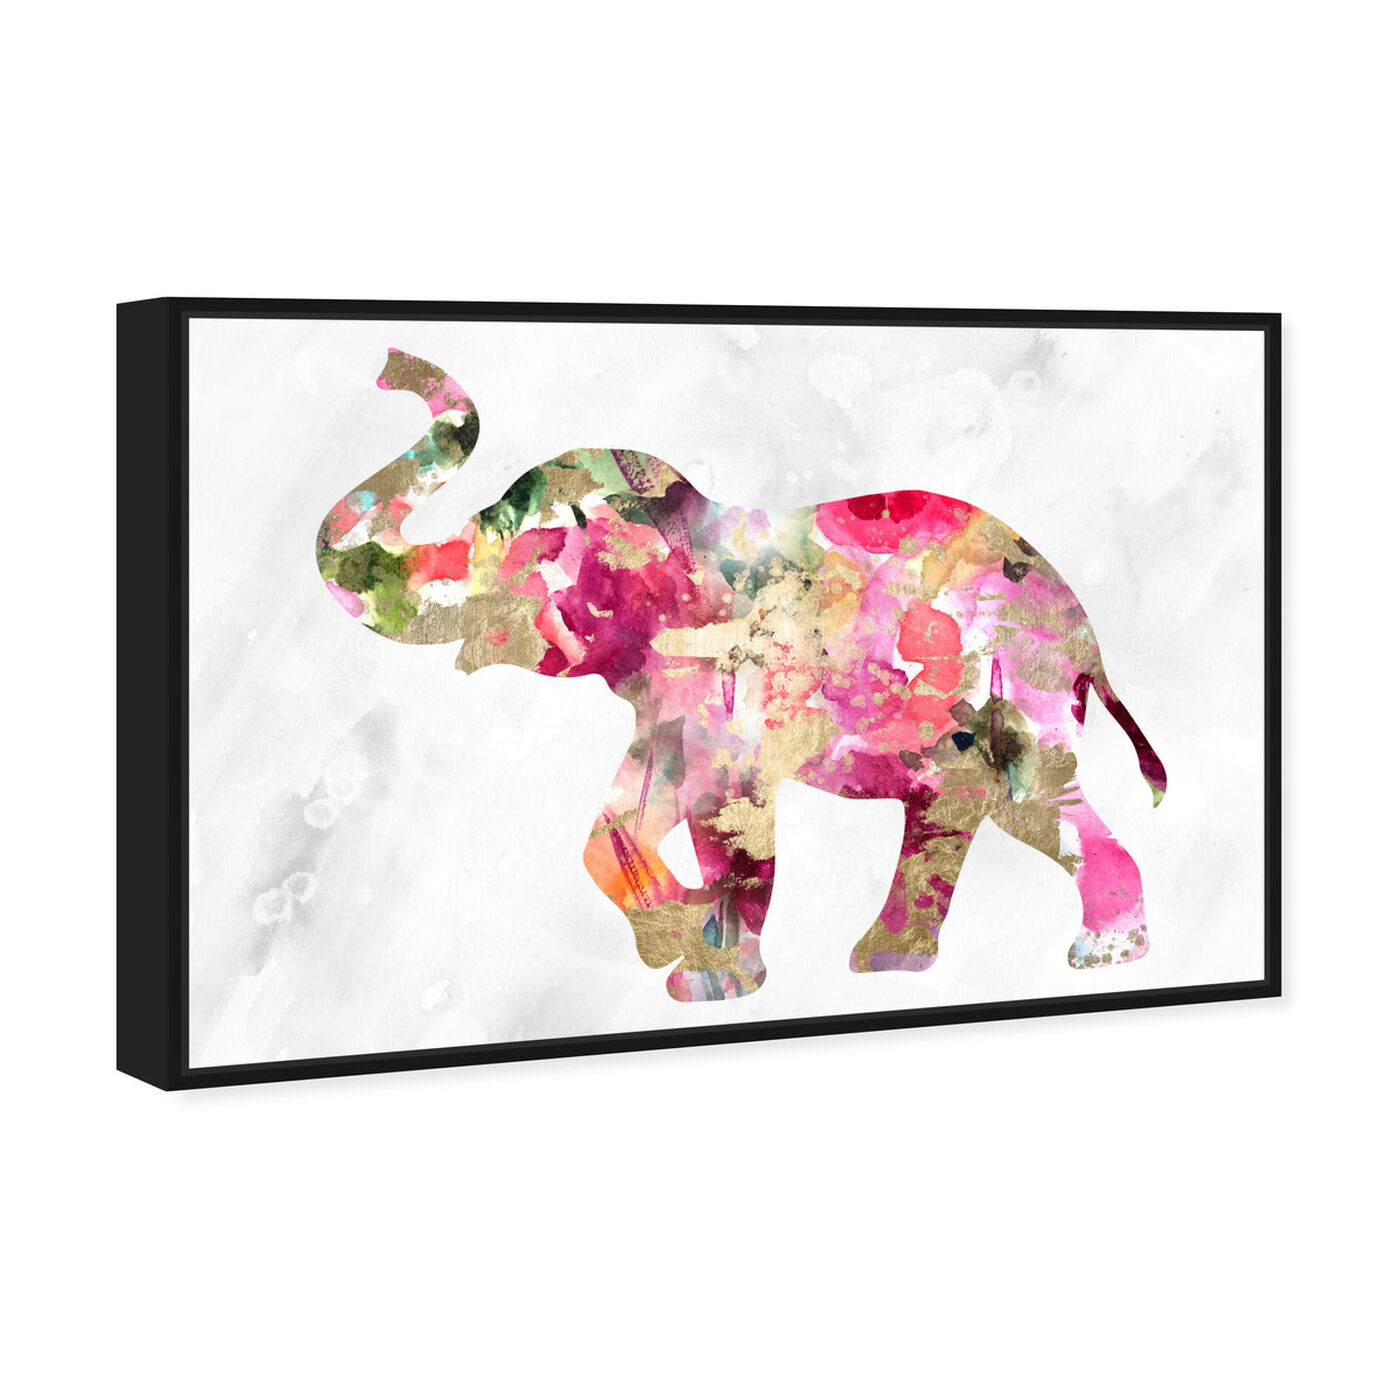 Angled view of Elephant Floral featuring animals and zoo and wild animals art.